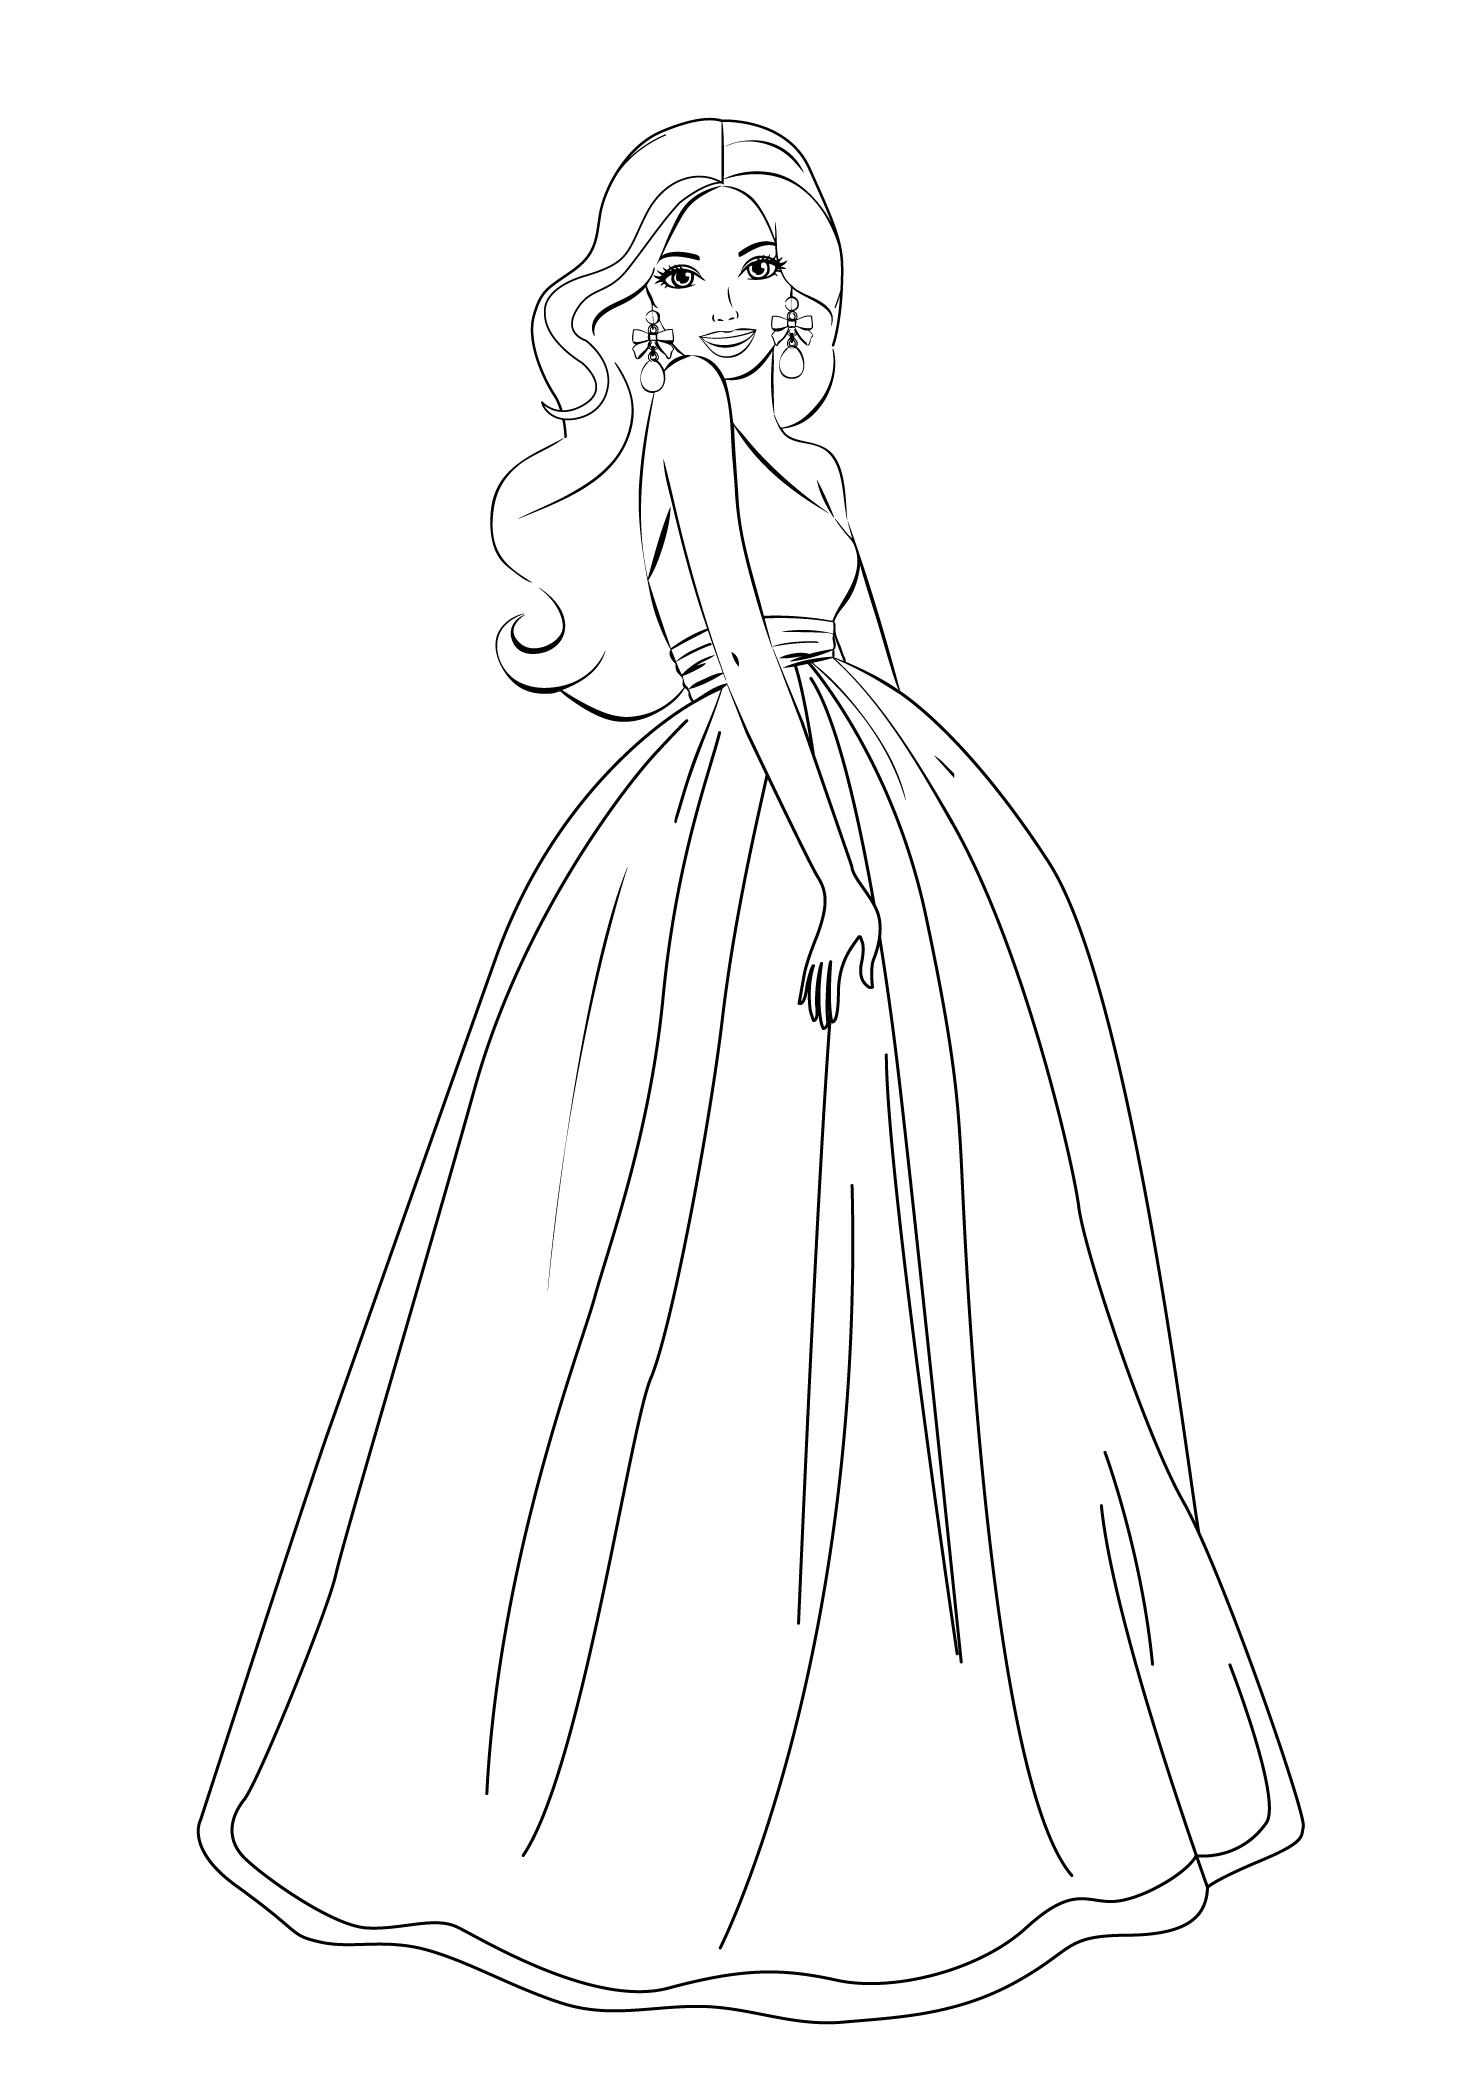 Barbie Coloring Pages For Girls Free Printable | Barbie | Pinterest - Free Printable Barbie Coloring Pages